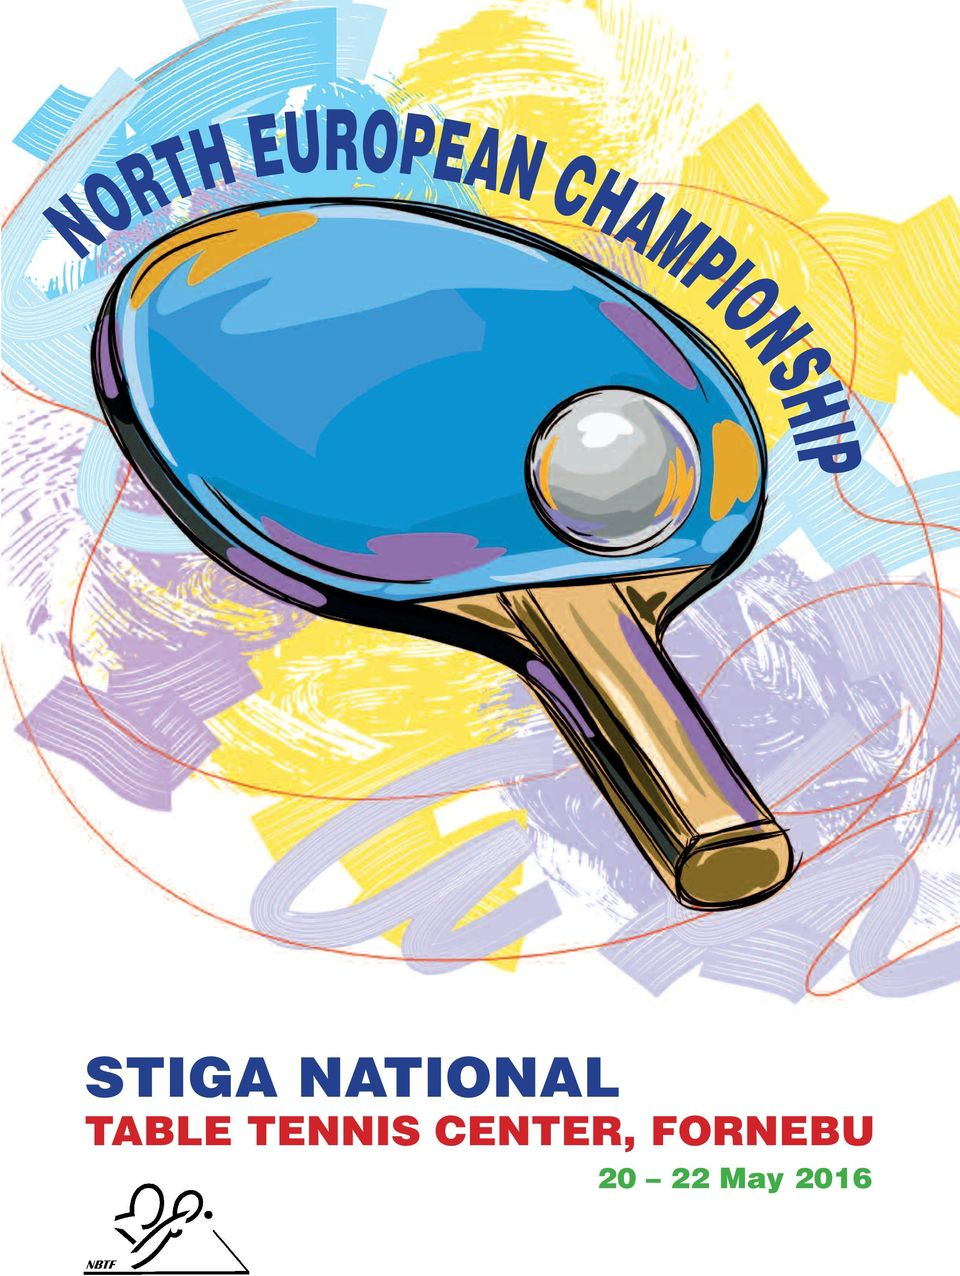 NATIONAL TABLE TENNIS